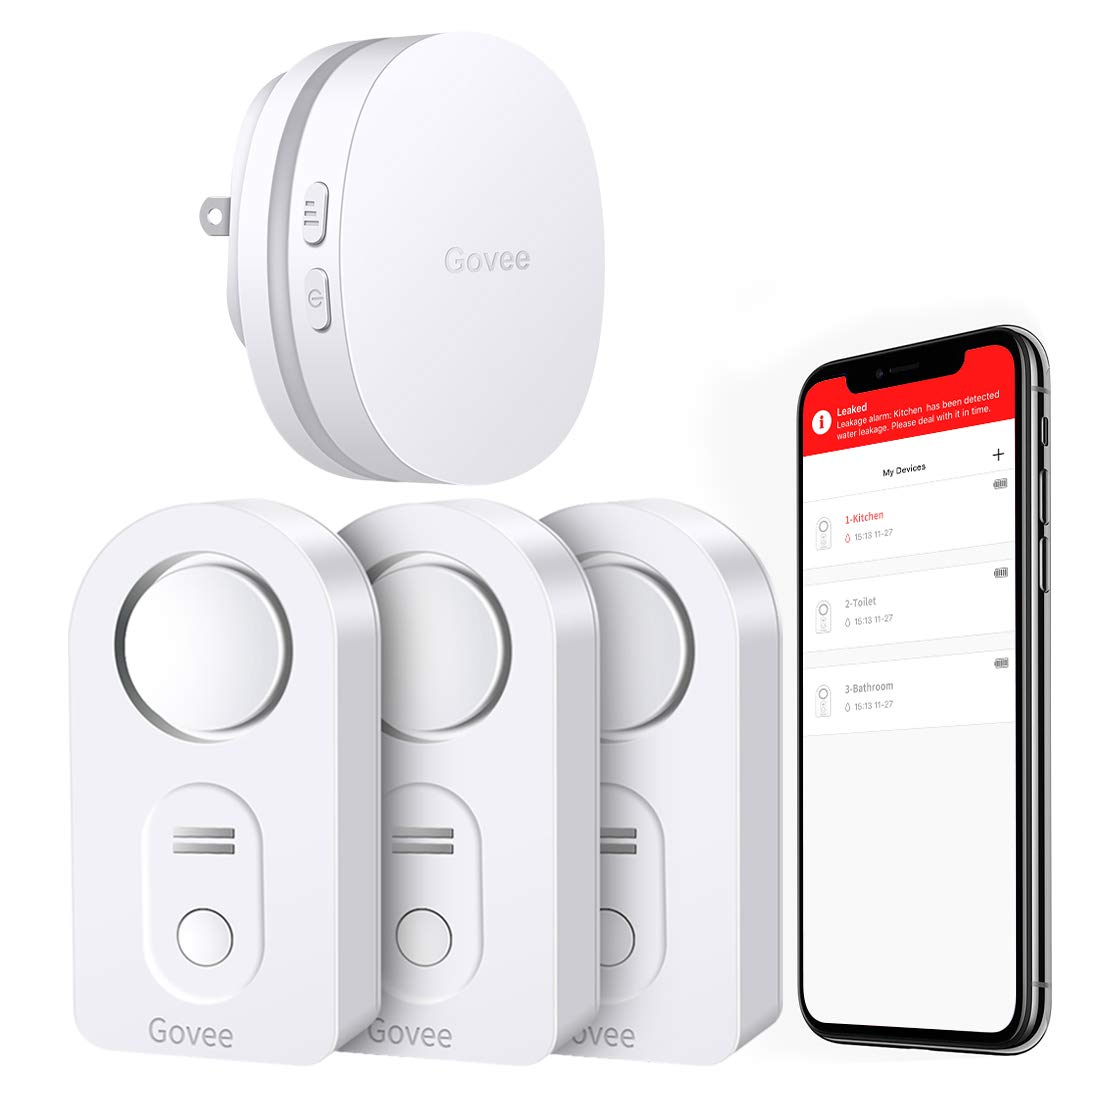 Govee WiFi Water Alarm, Smart APP Leak Alert, Wireless Water Sensor and Alarm with Email, Notification, App Alerts, Remote Monitor Leak for Home Security Basement(3 Packs)(Not Support 5G WiFi) by Govee